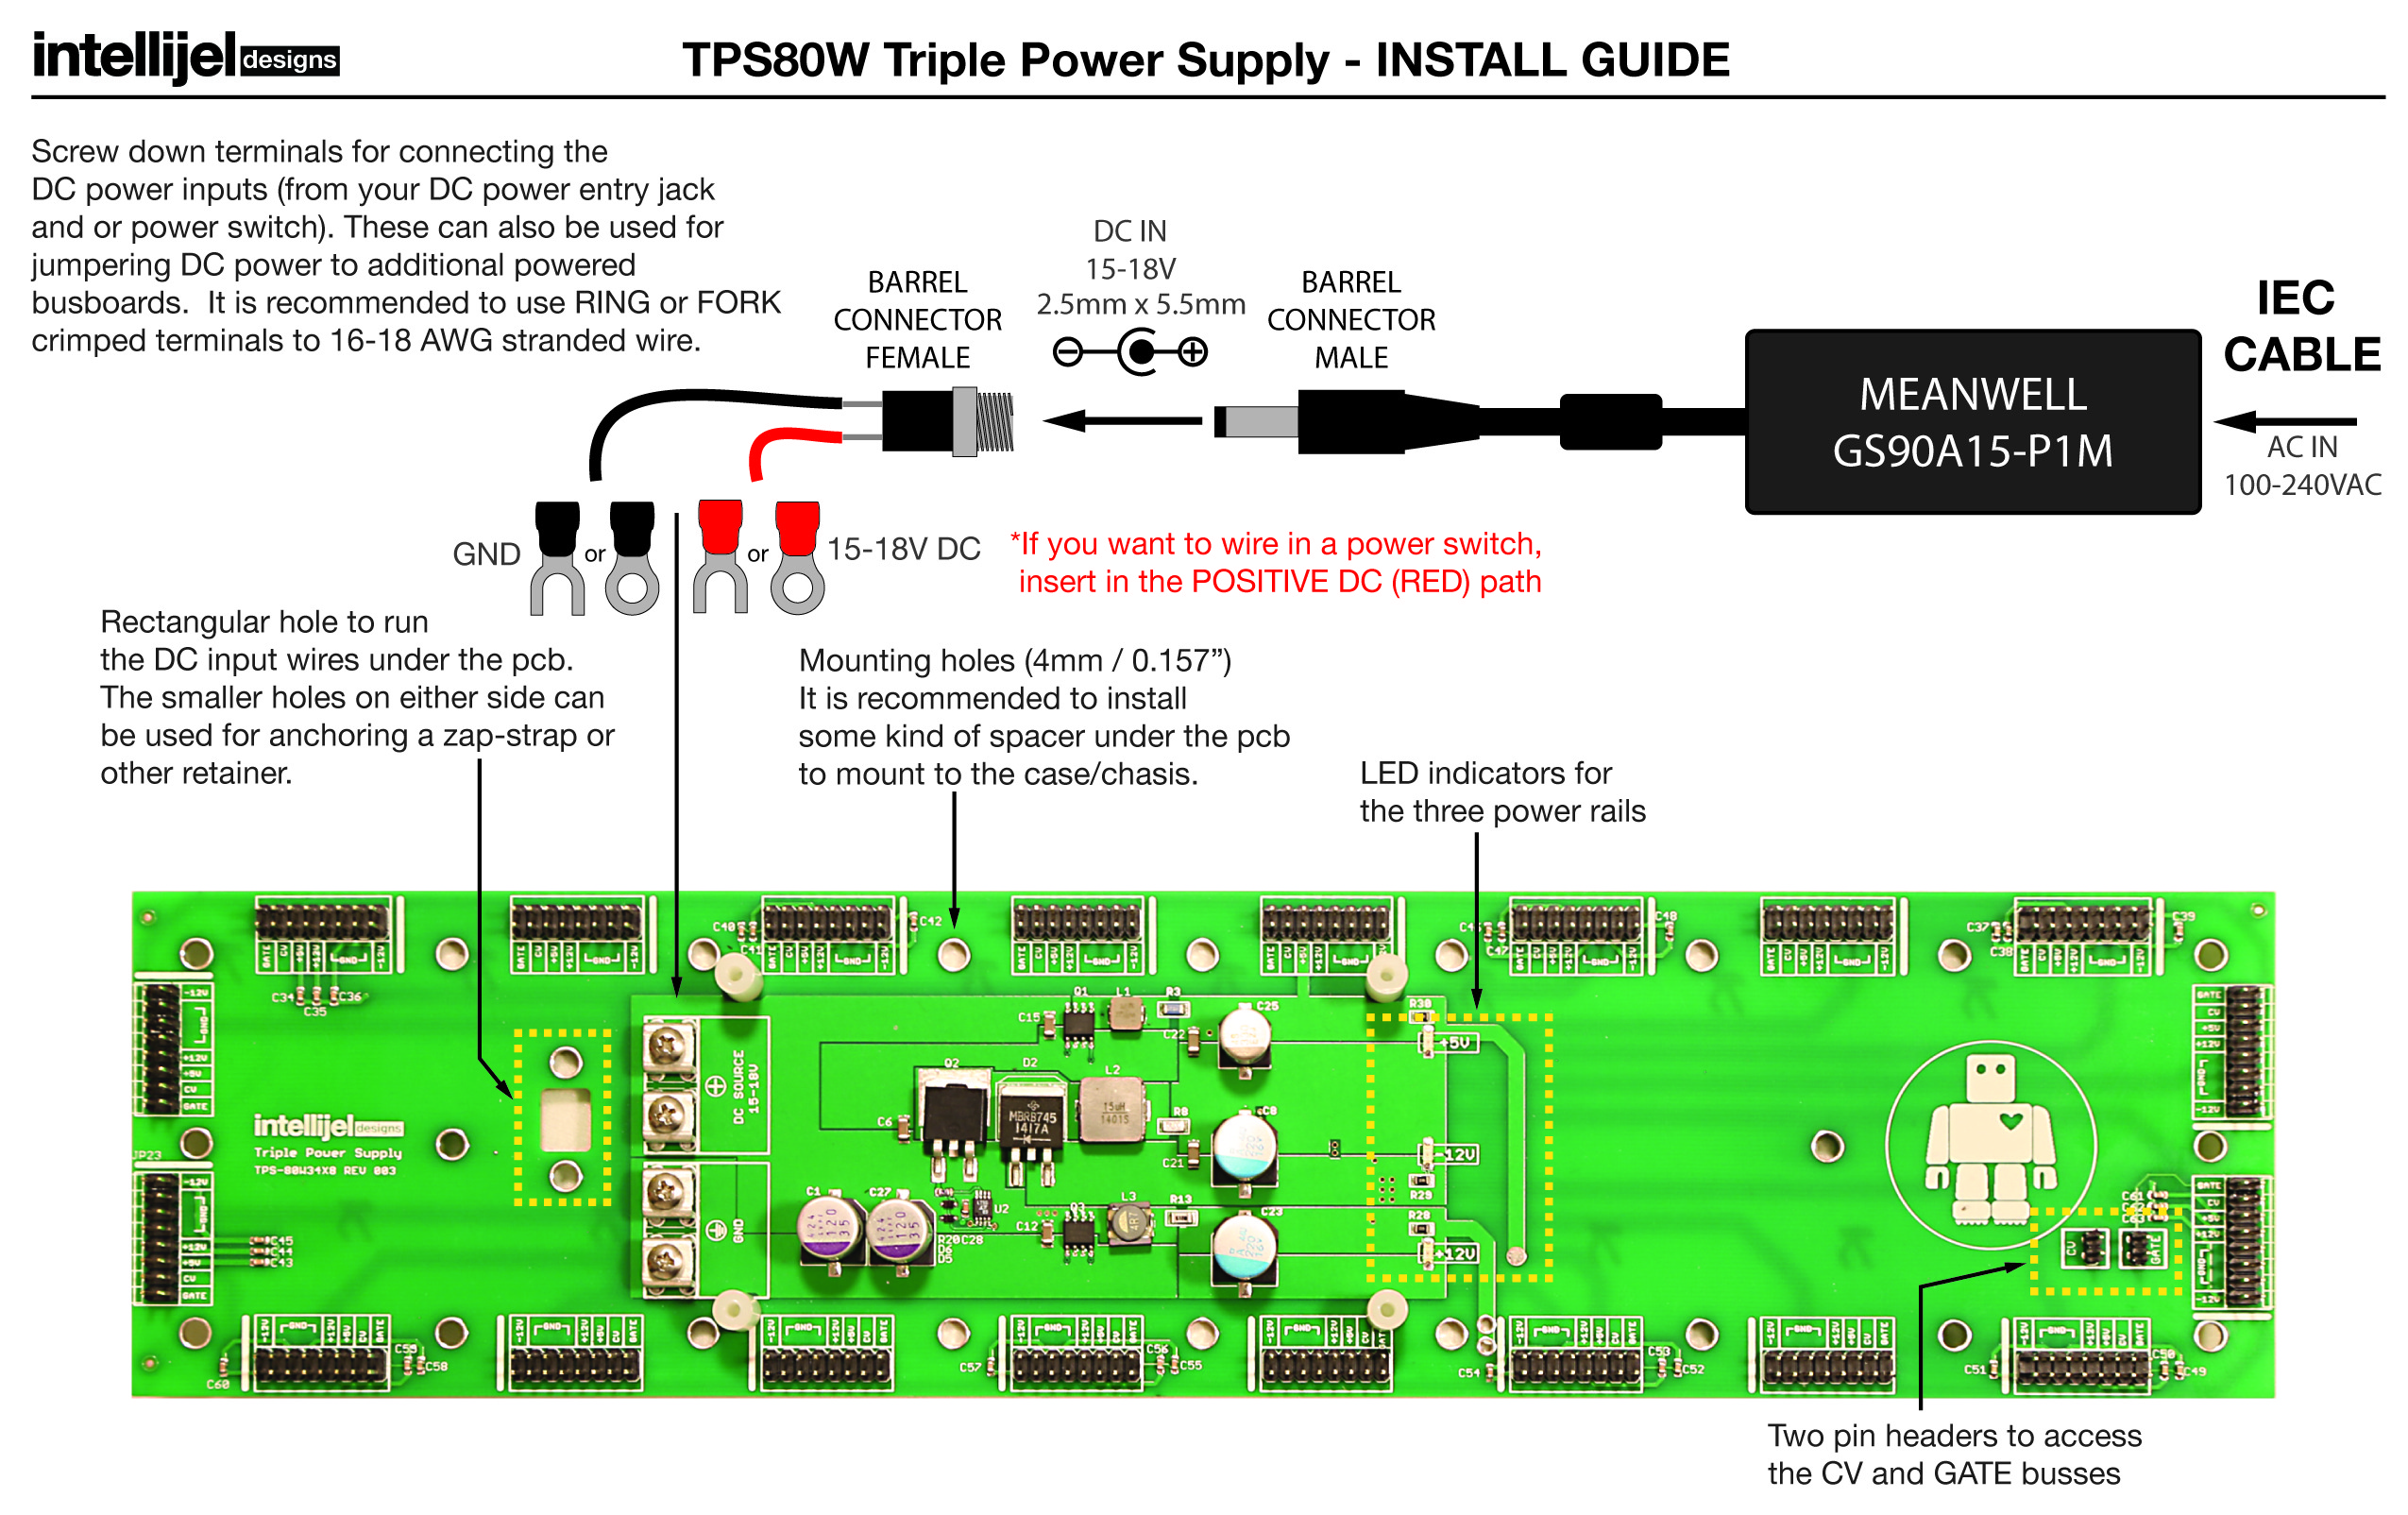 TPS80W overview diagram